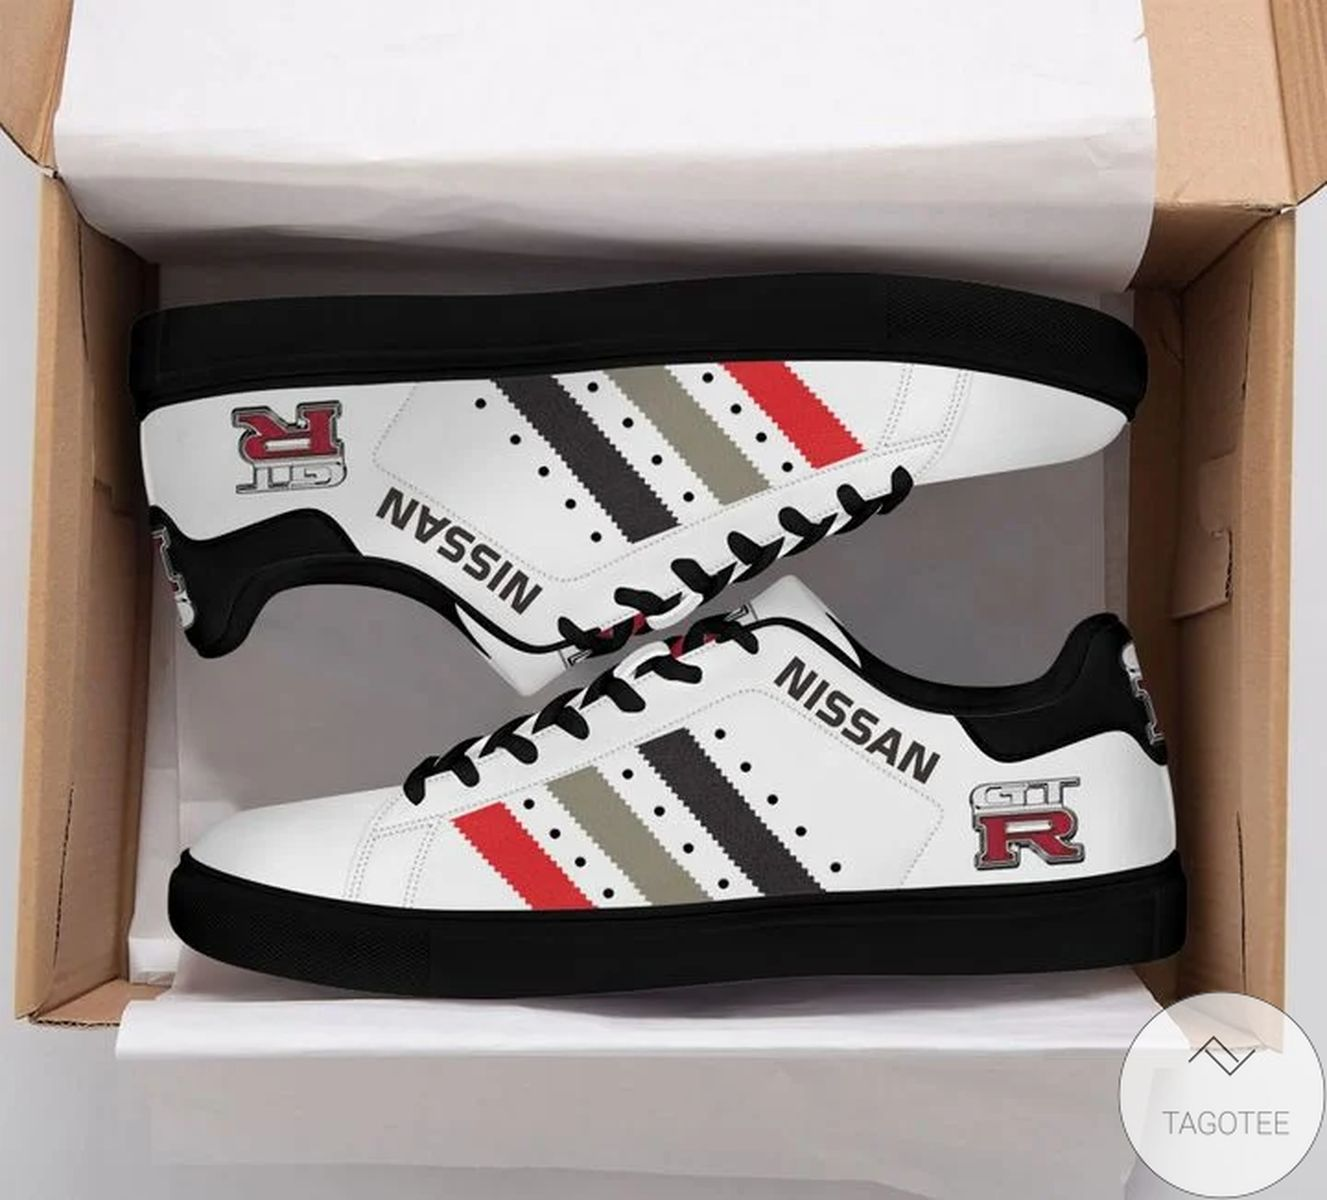 Nissan Gt-R Stan Smith Shoes